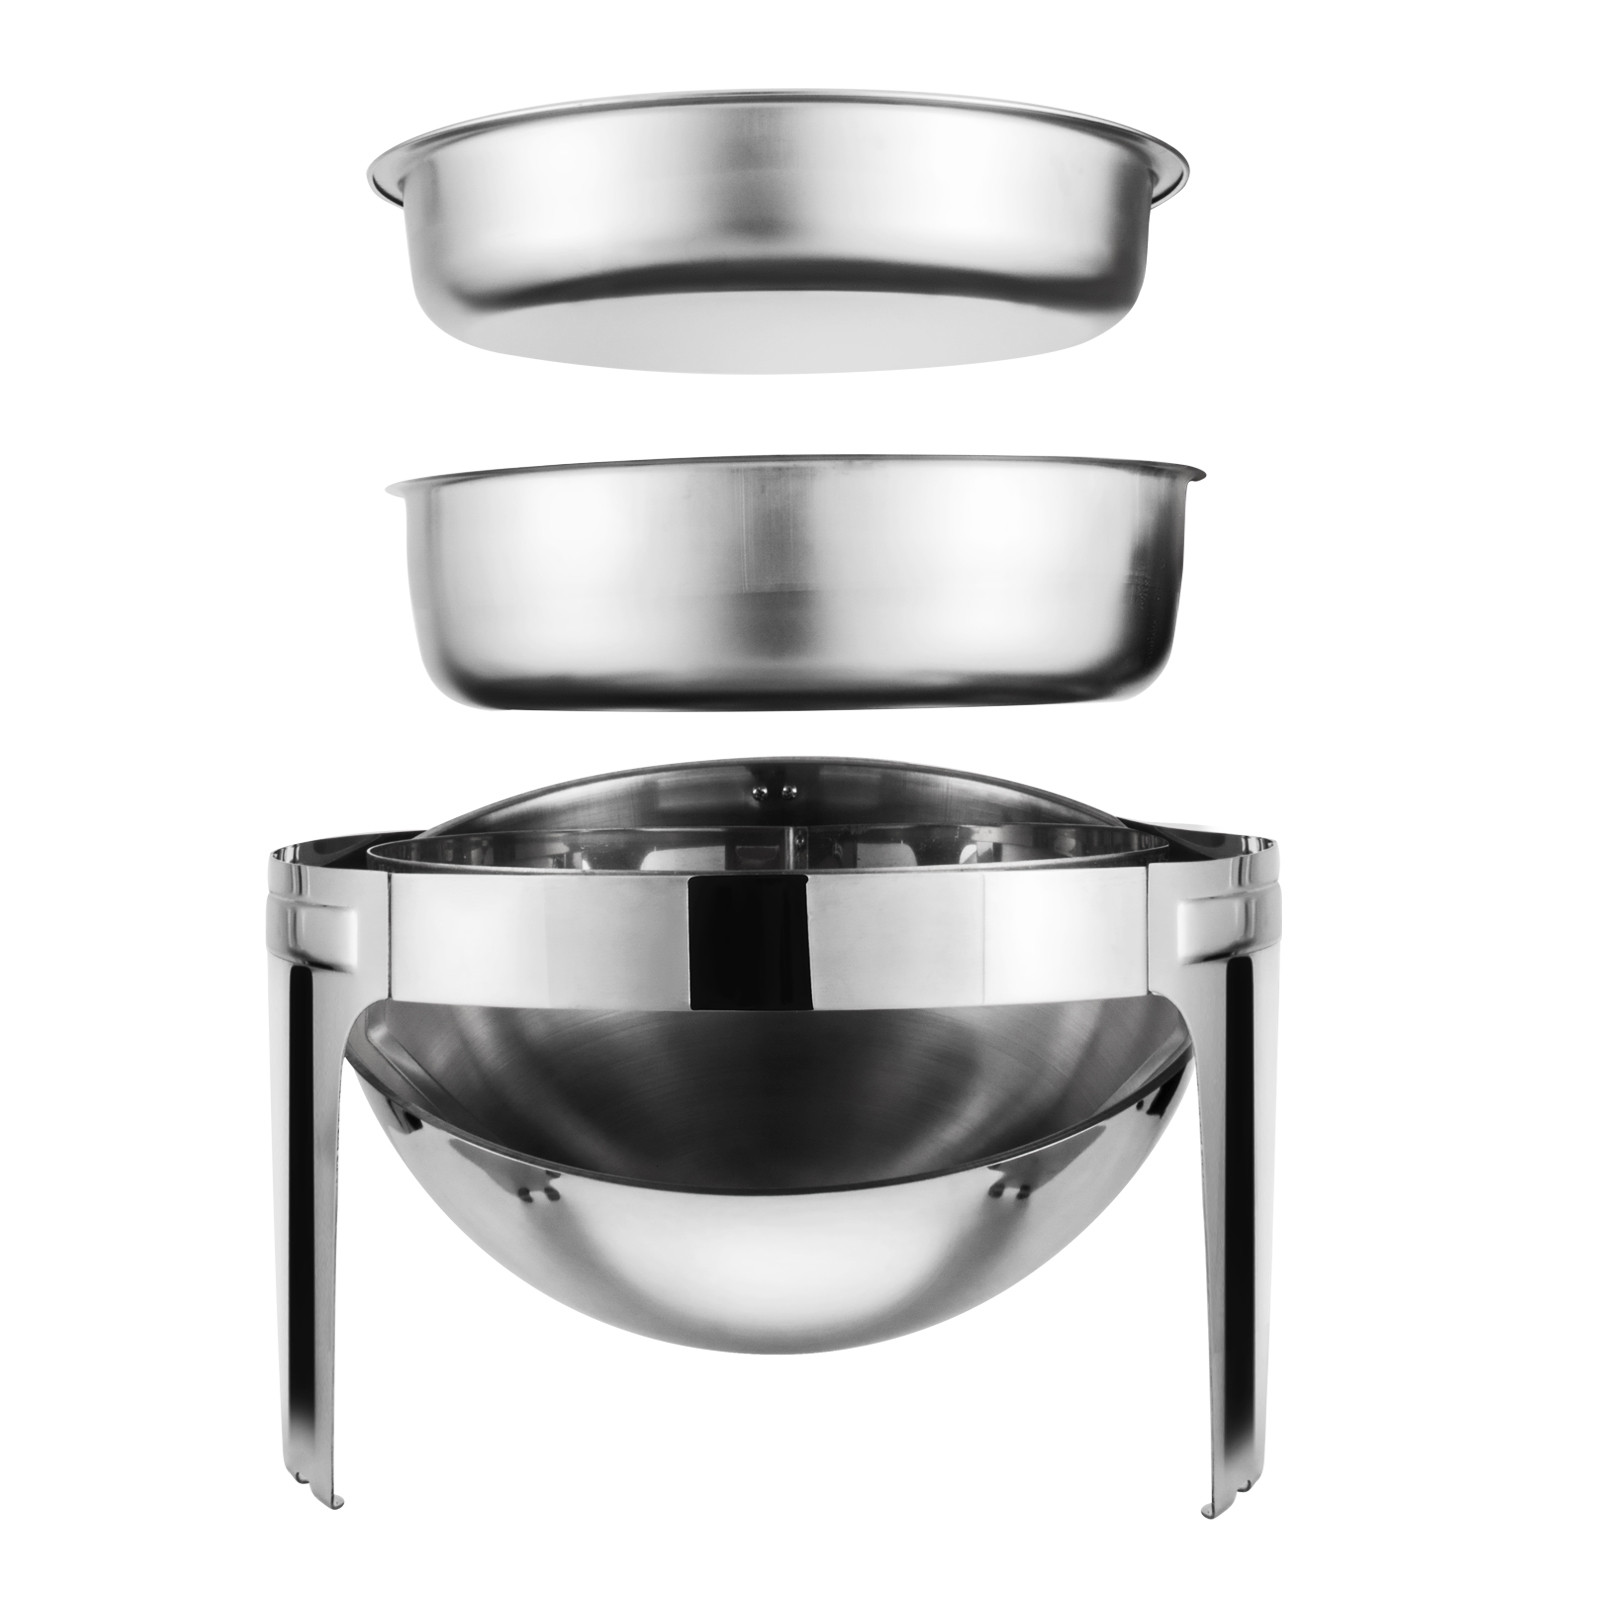 thumbnail 117 - Multi-Stainless-Steel-Chafing-Dish-Bain-Marie-Bow-Catering-Dish-Hotpot-Server